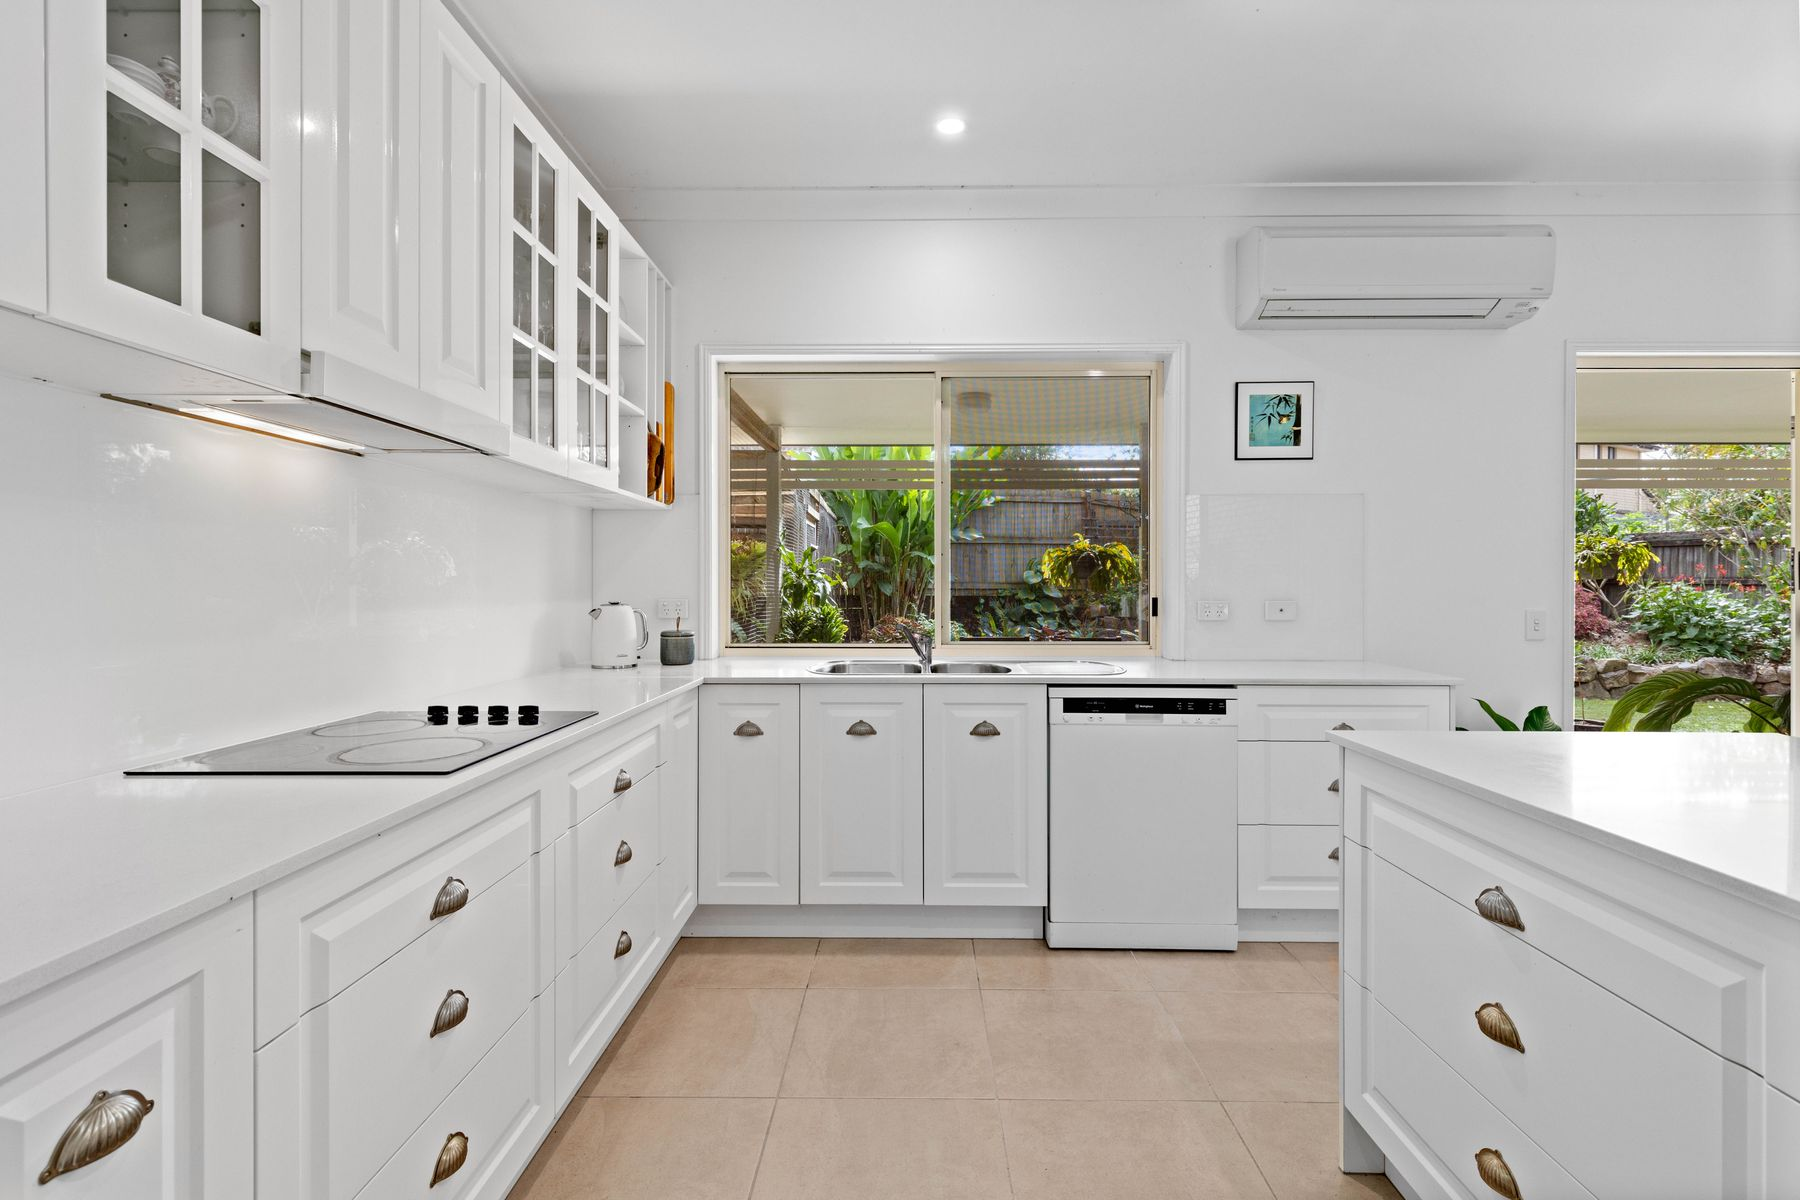 4 Harvard Court, Sippy Downs, QLD 4556